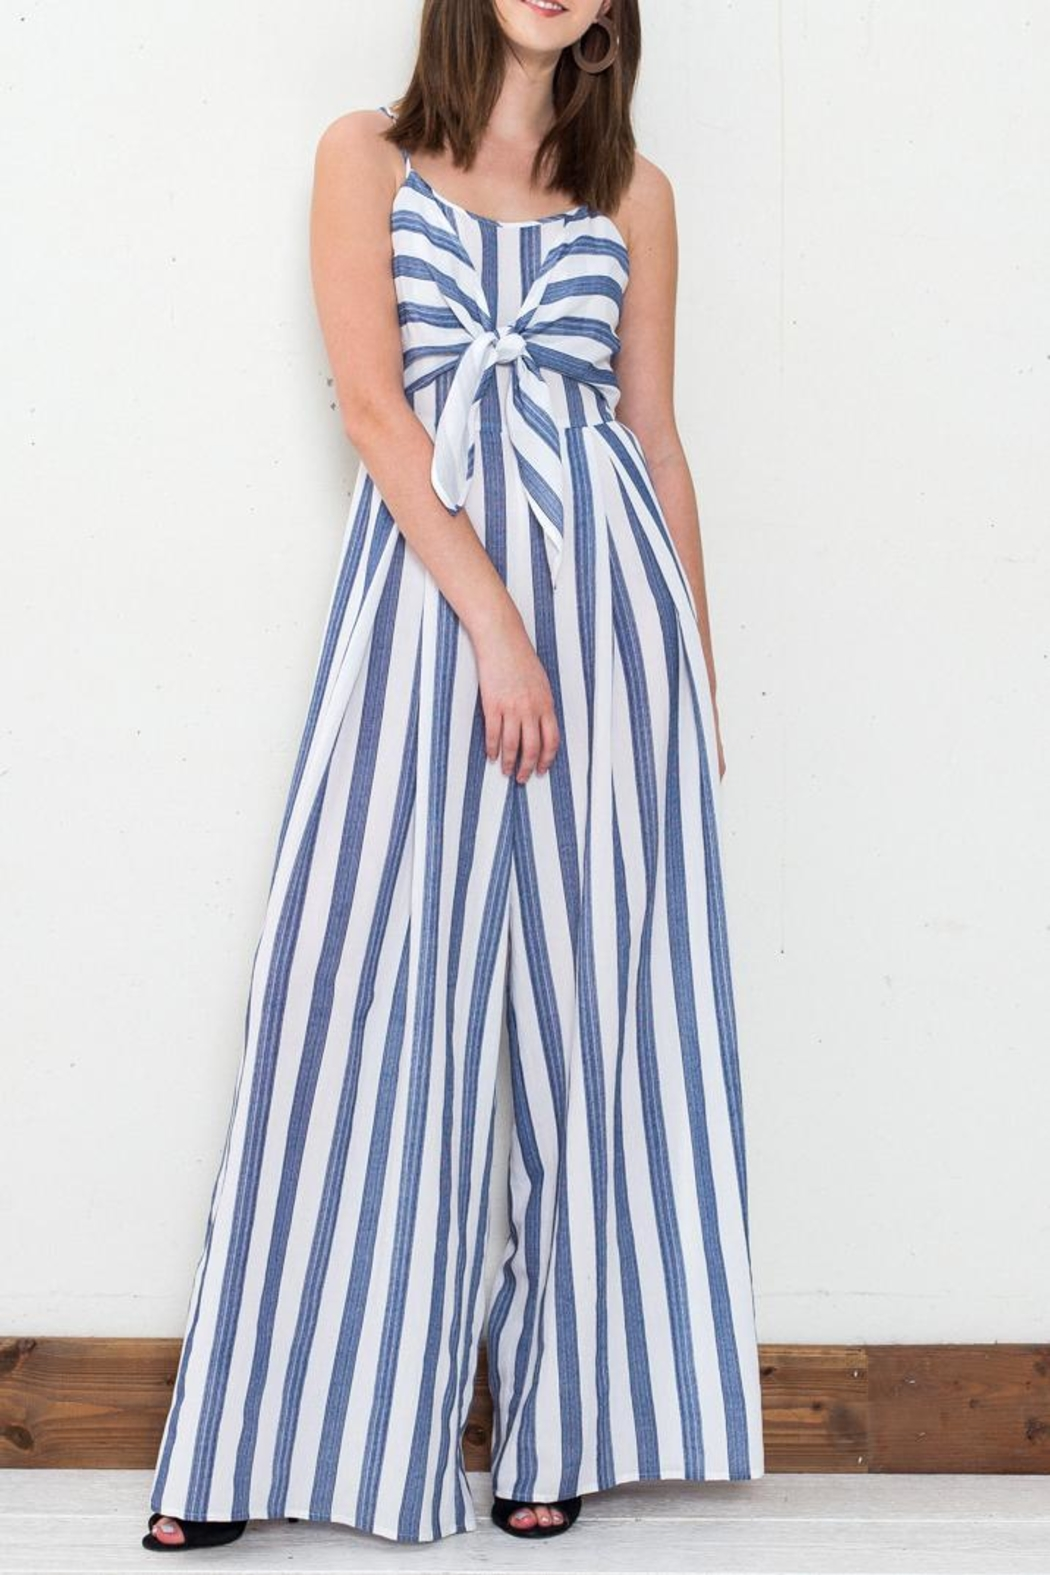 e55f9d03c41 Flying Tomato Blue Striped Jumpsuit from New York by Dor L Dor ...